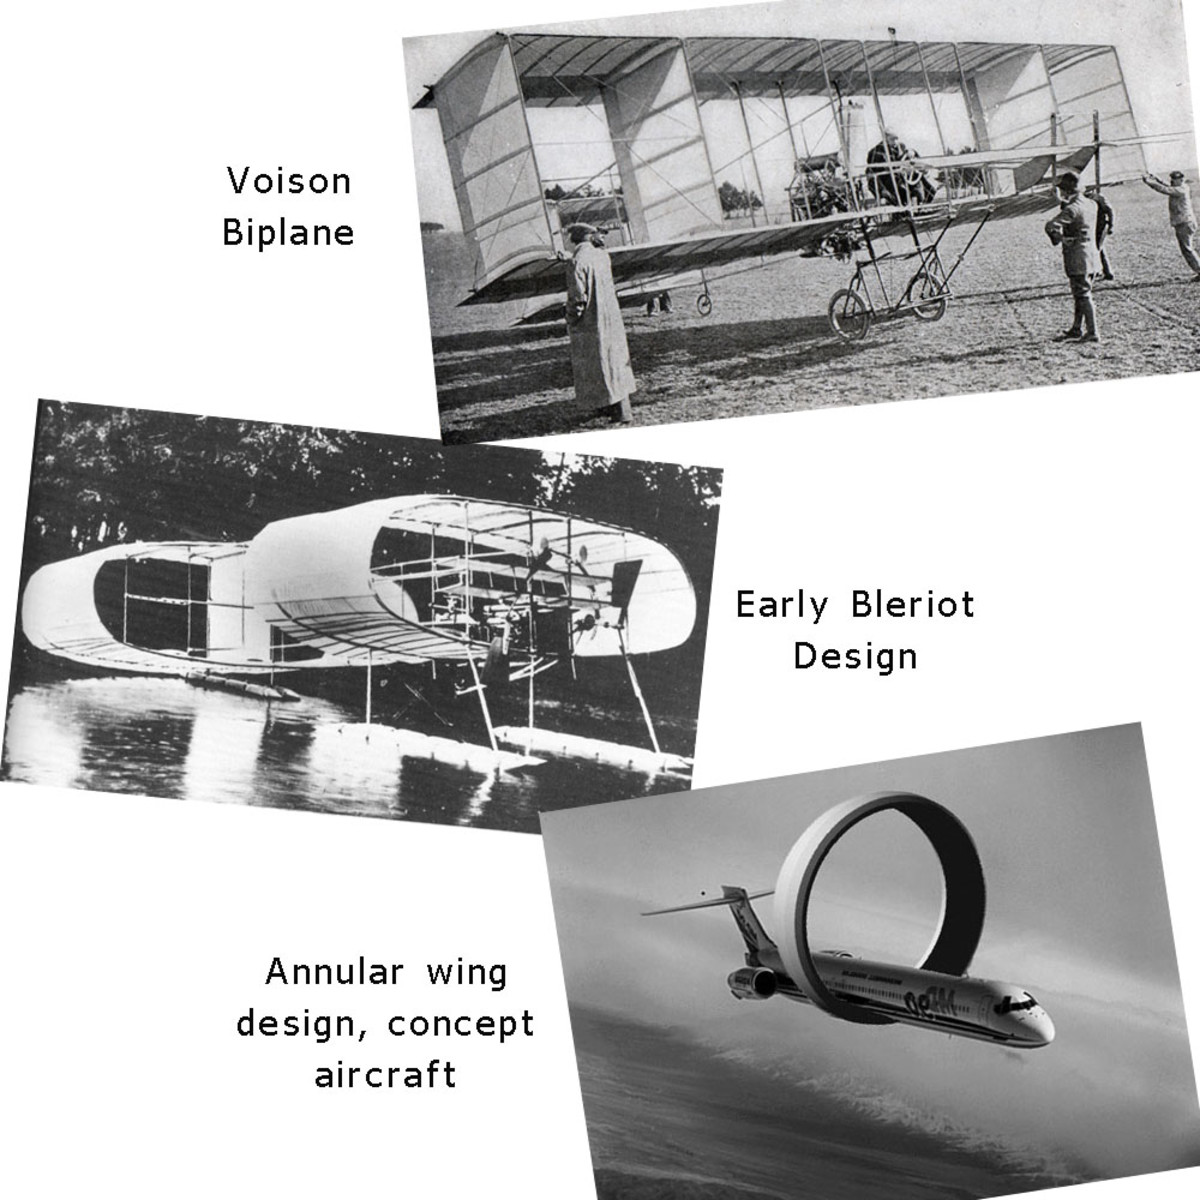 Box kite and annular wing aircraft designs.